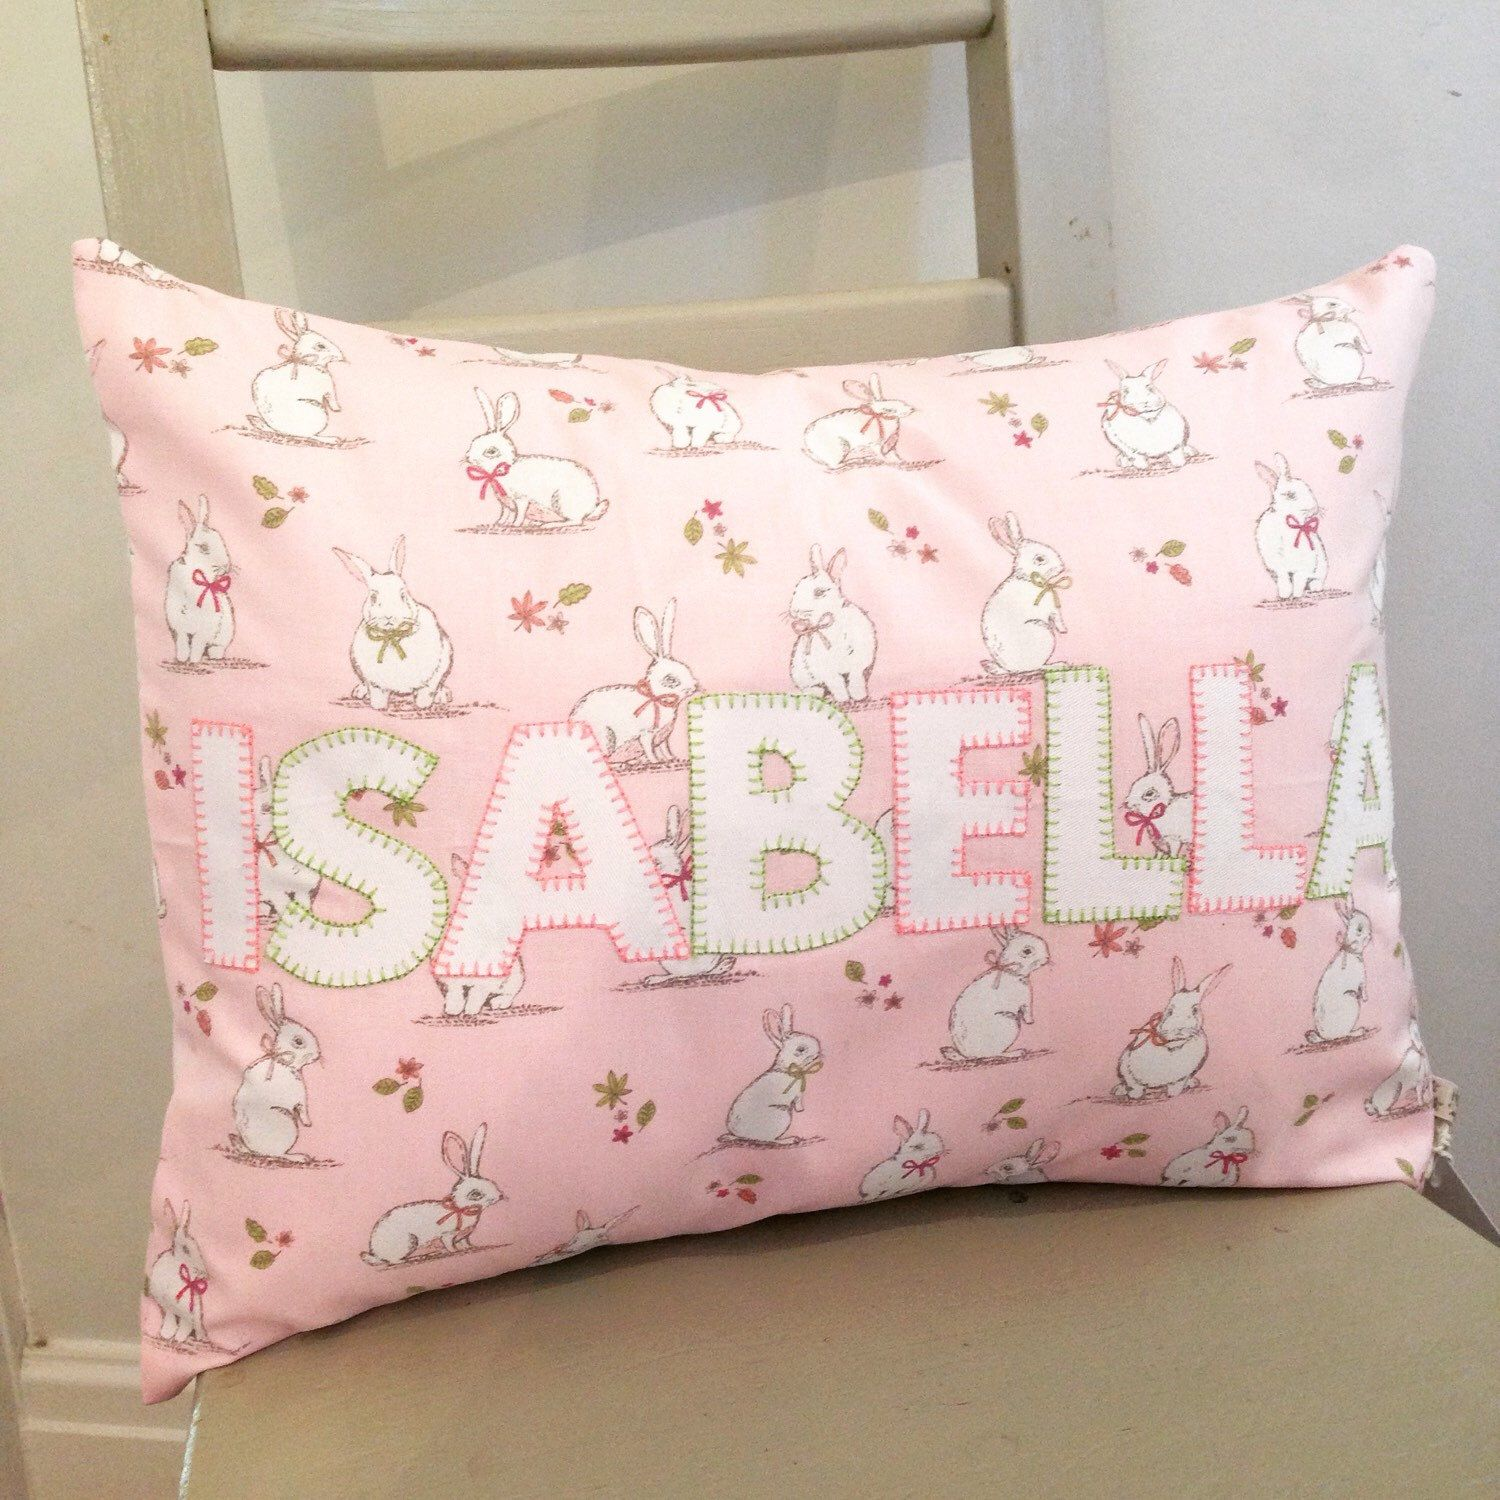 Items Similar To Bunny Cushions Personalised Nursery Decor Baby Gift Name Initials Letter Personalized Home Pillow On Etsy